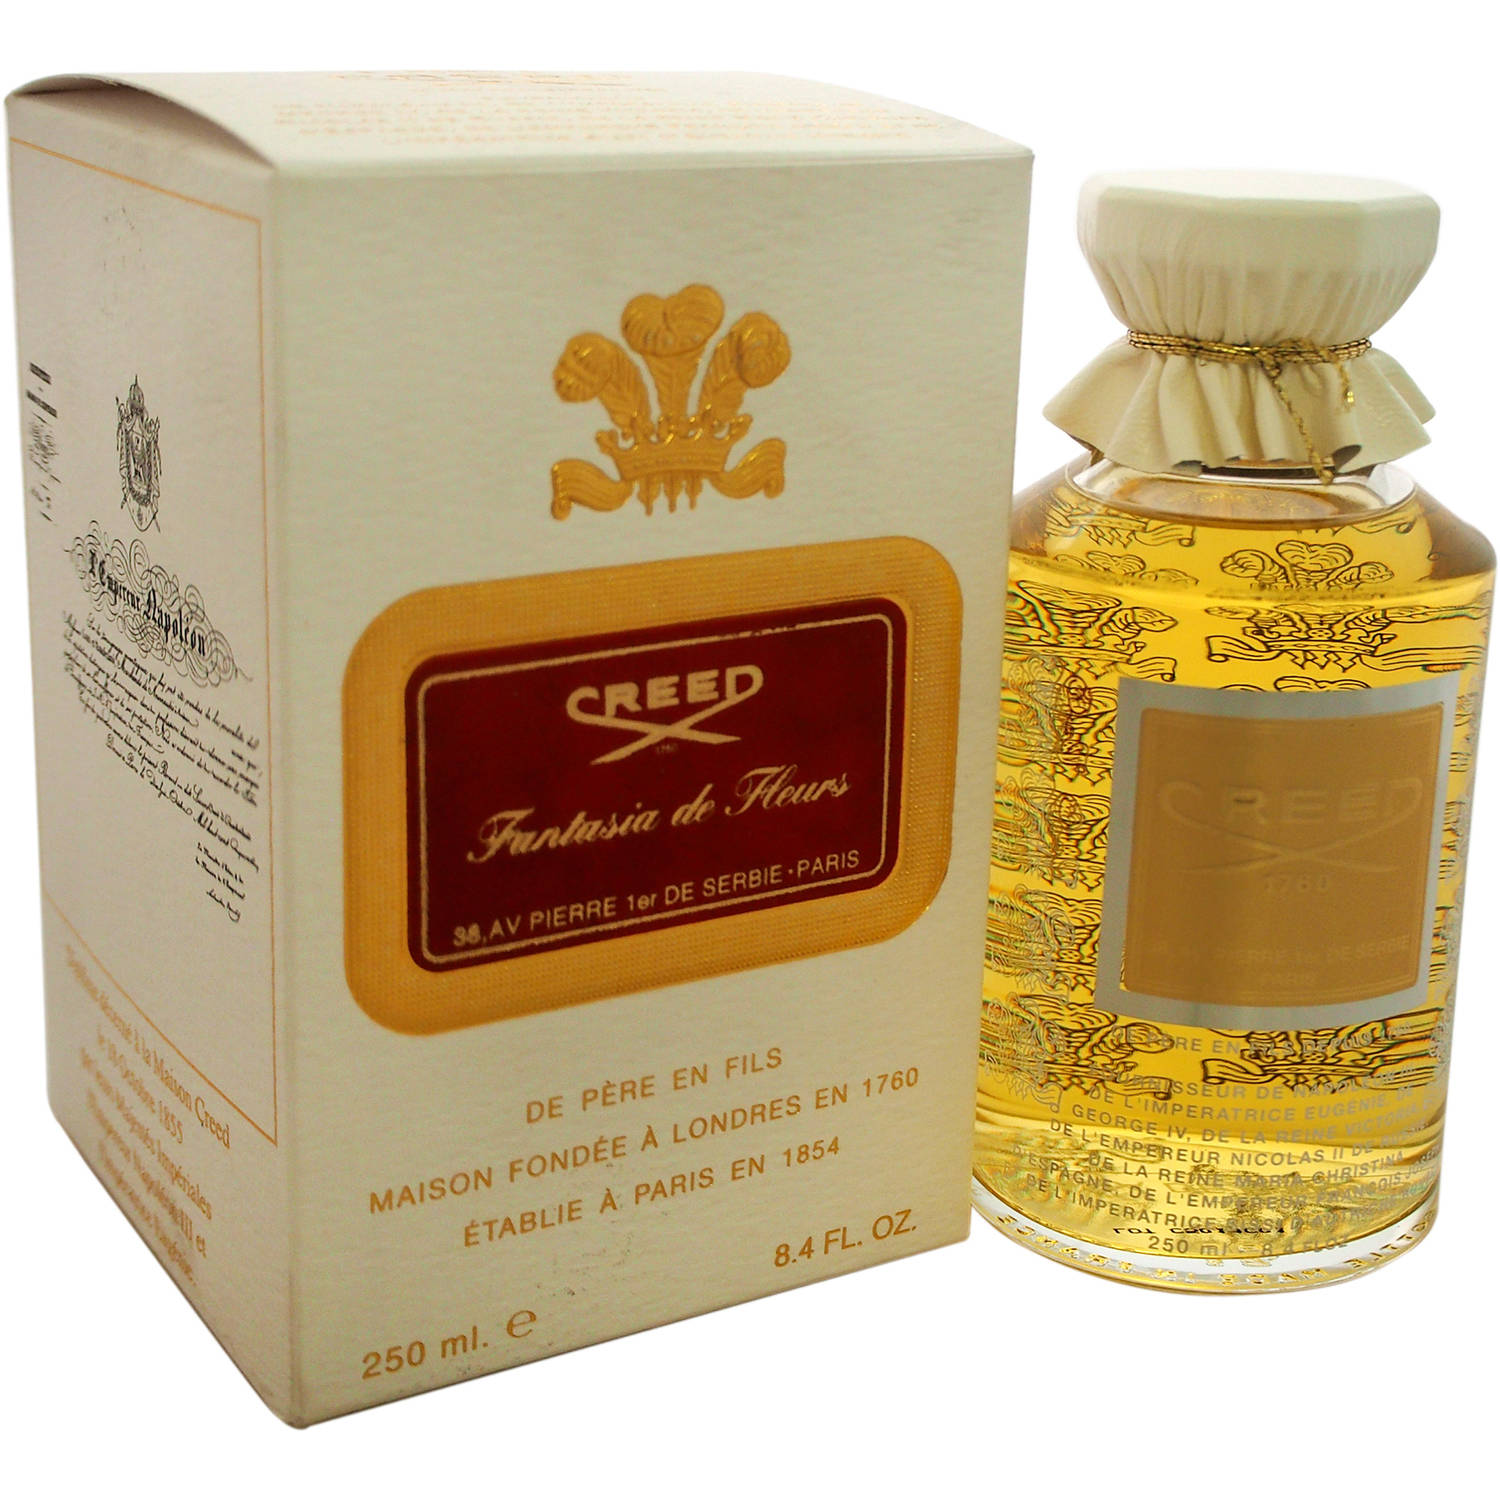 Creed Creed Fantasia De Fleurs Millesime Spray, 8.4 oz